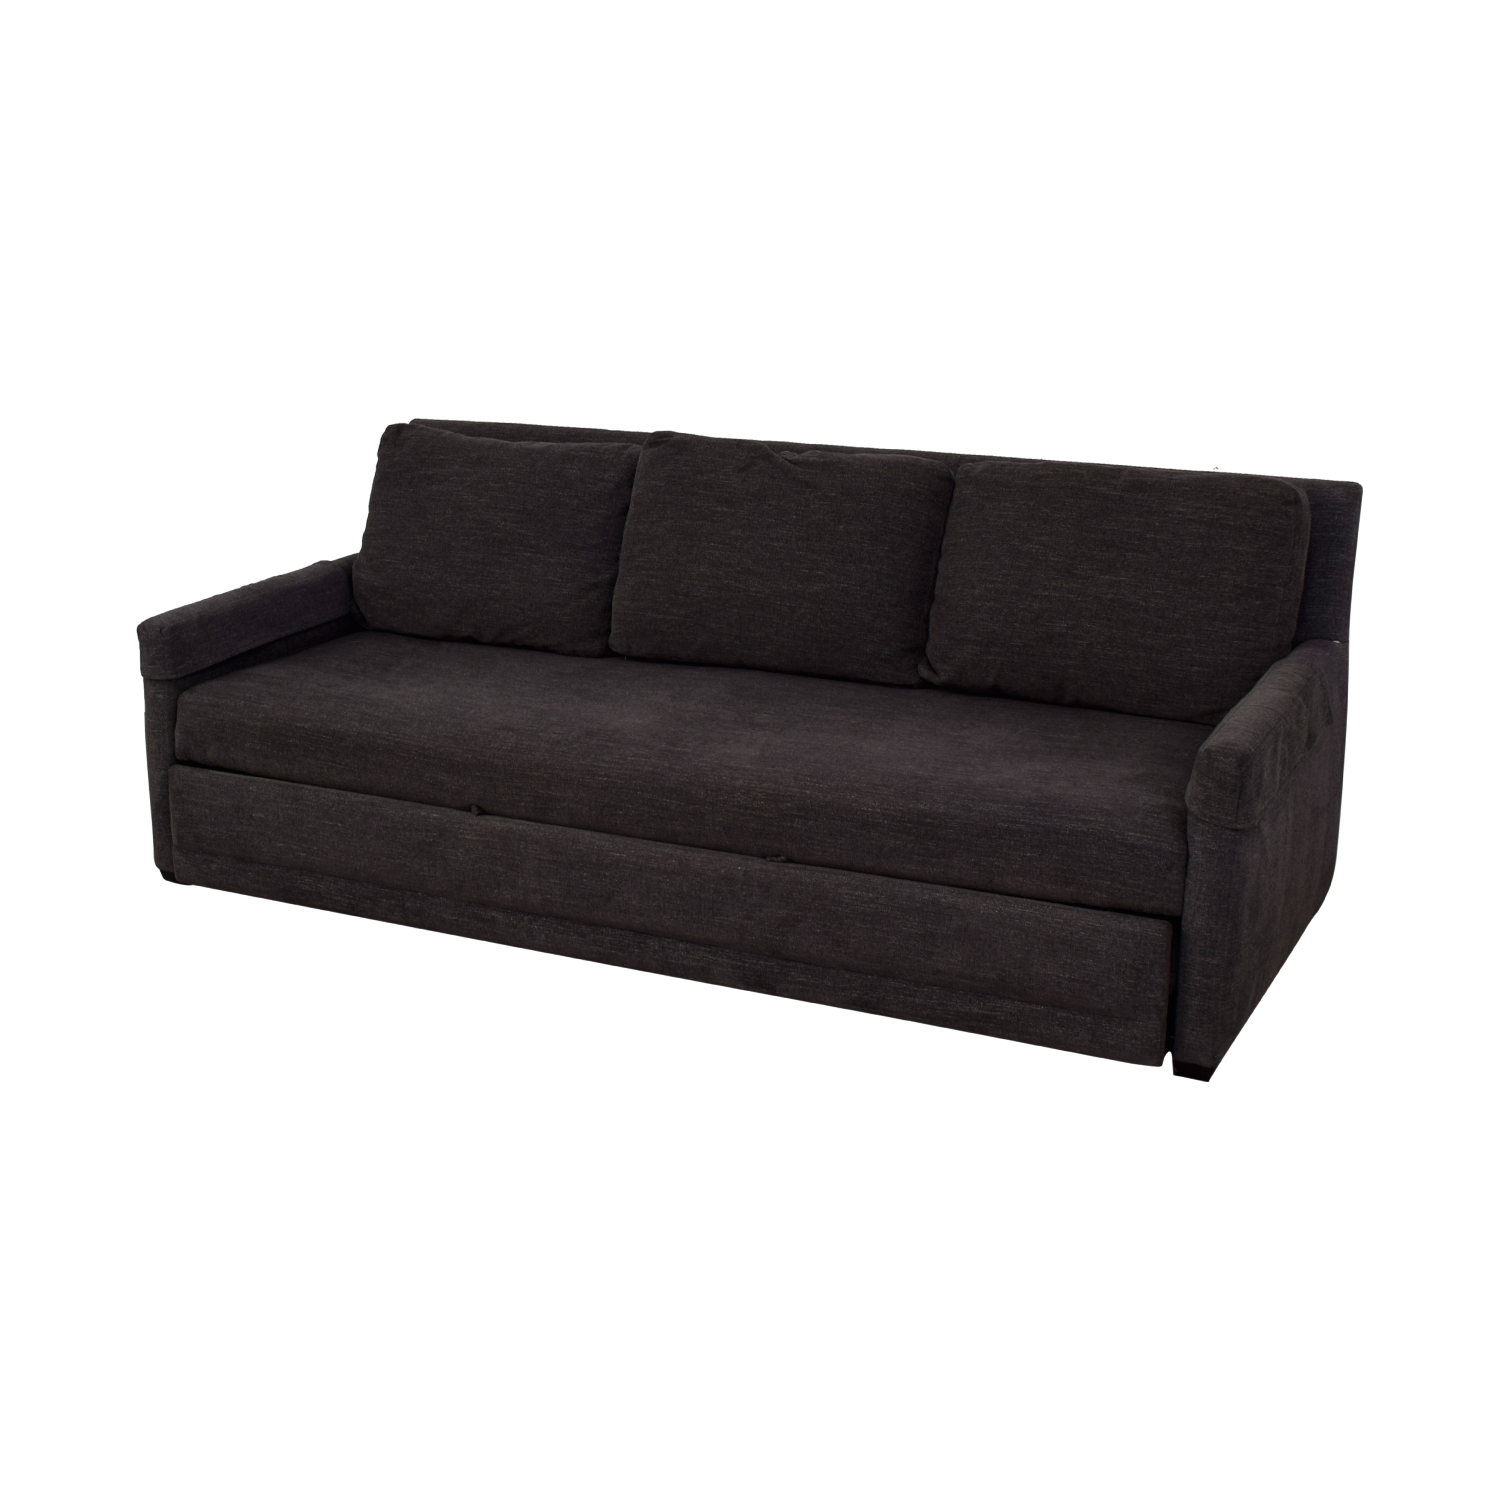 81 Off Crate Barrel Reston Grey Queen Trundle Sleeper Sofabed Sofas